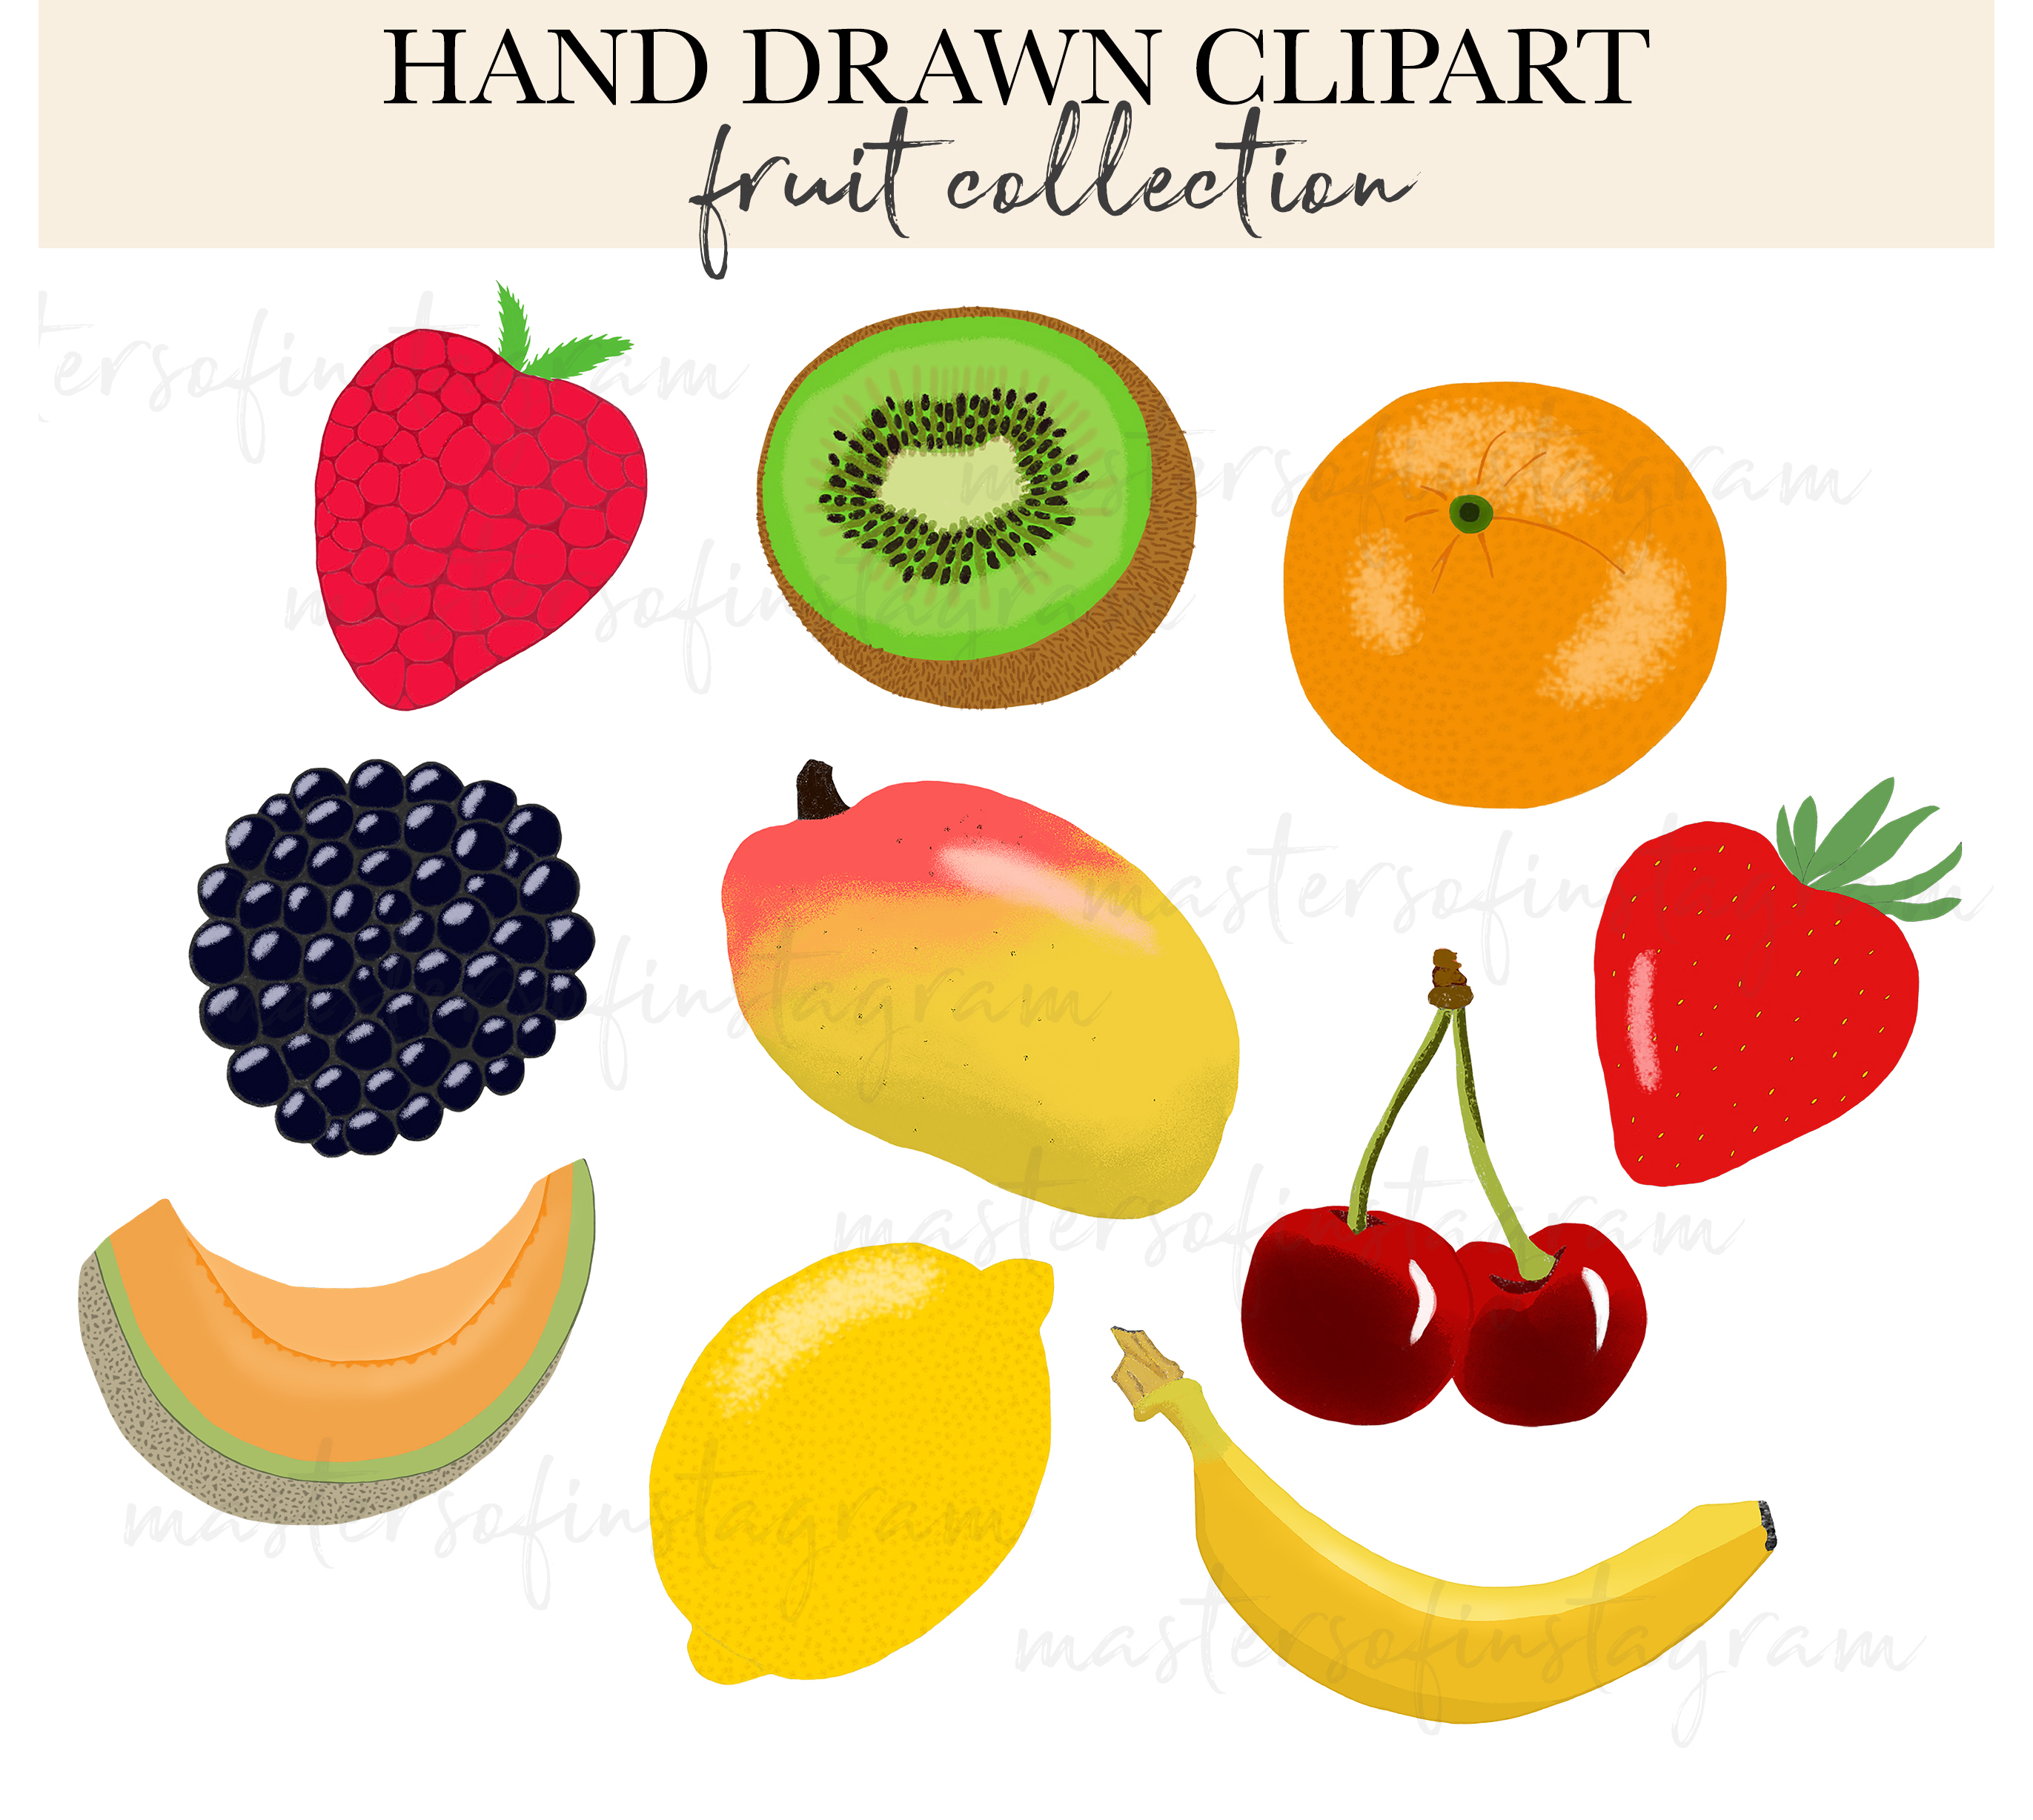 Hand drawn fruit clipart icons illustrations example image 2